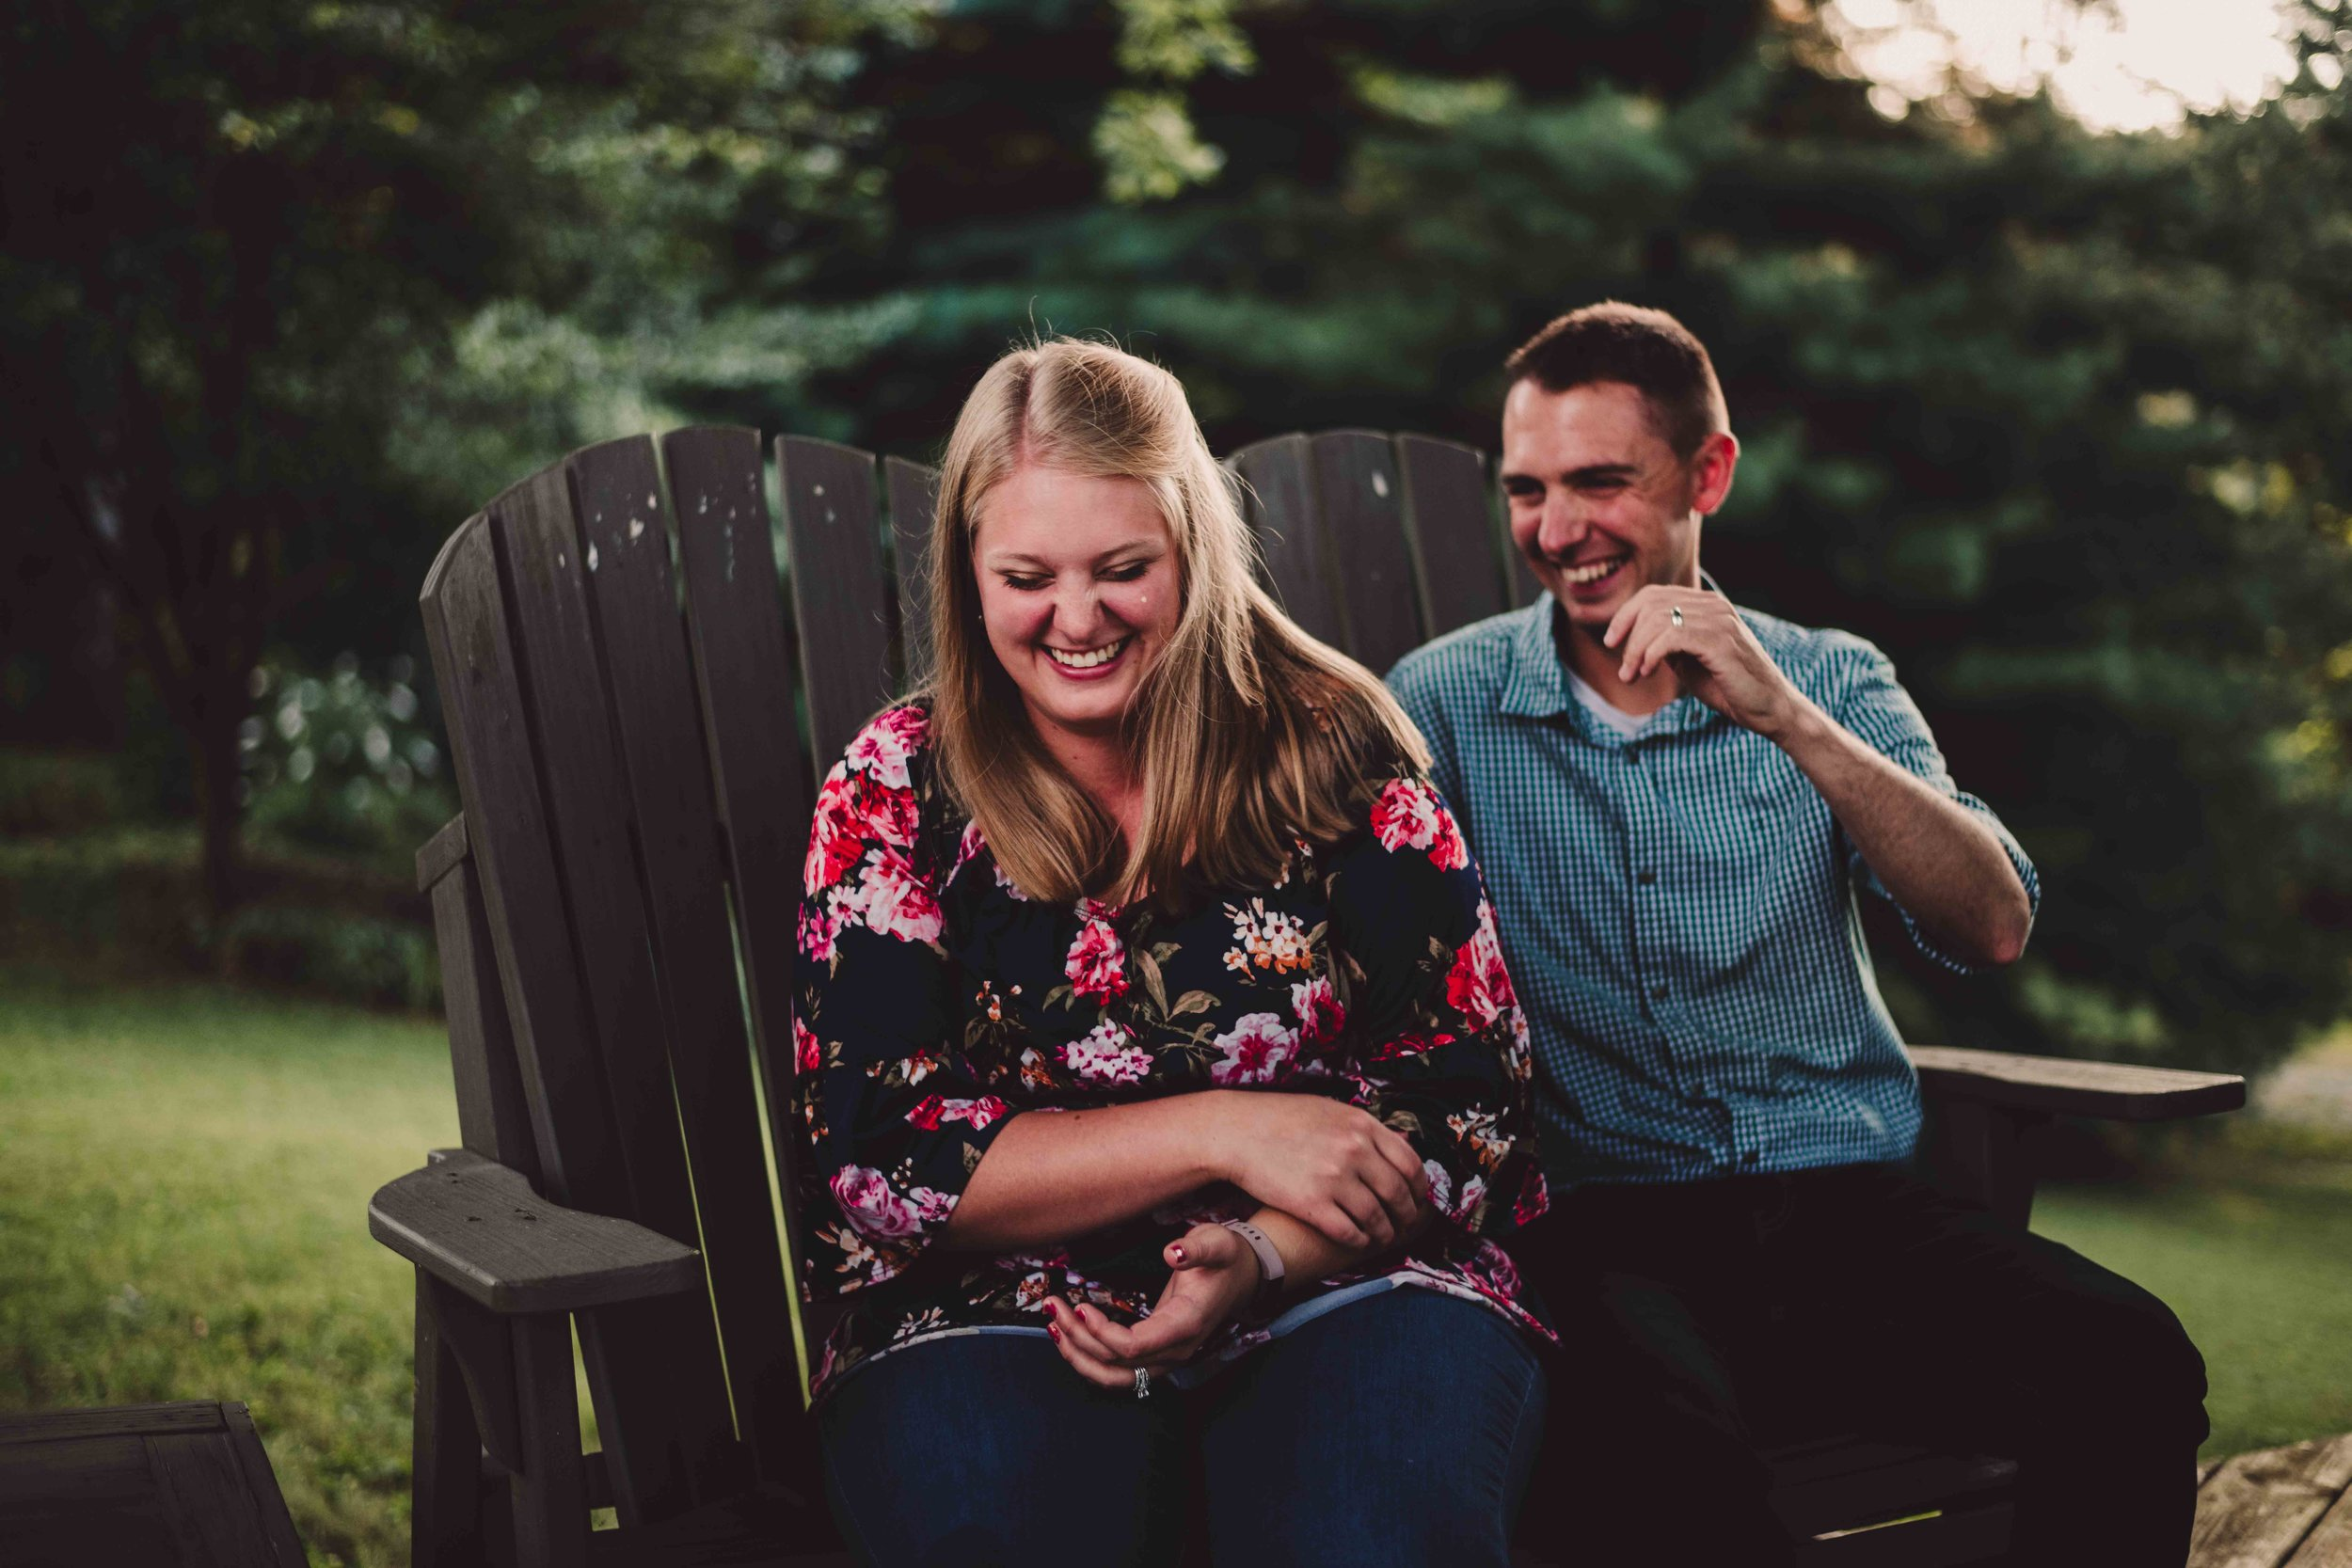 Share the laughter - Who doesn't like a good laugh. One of my favorite emotions to capture!